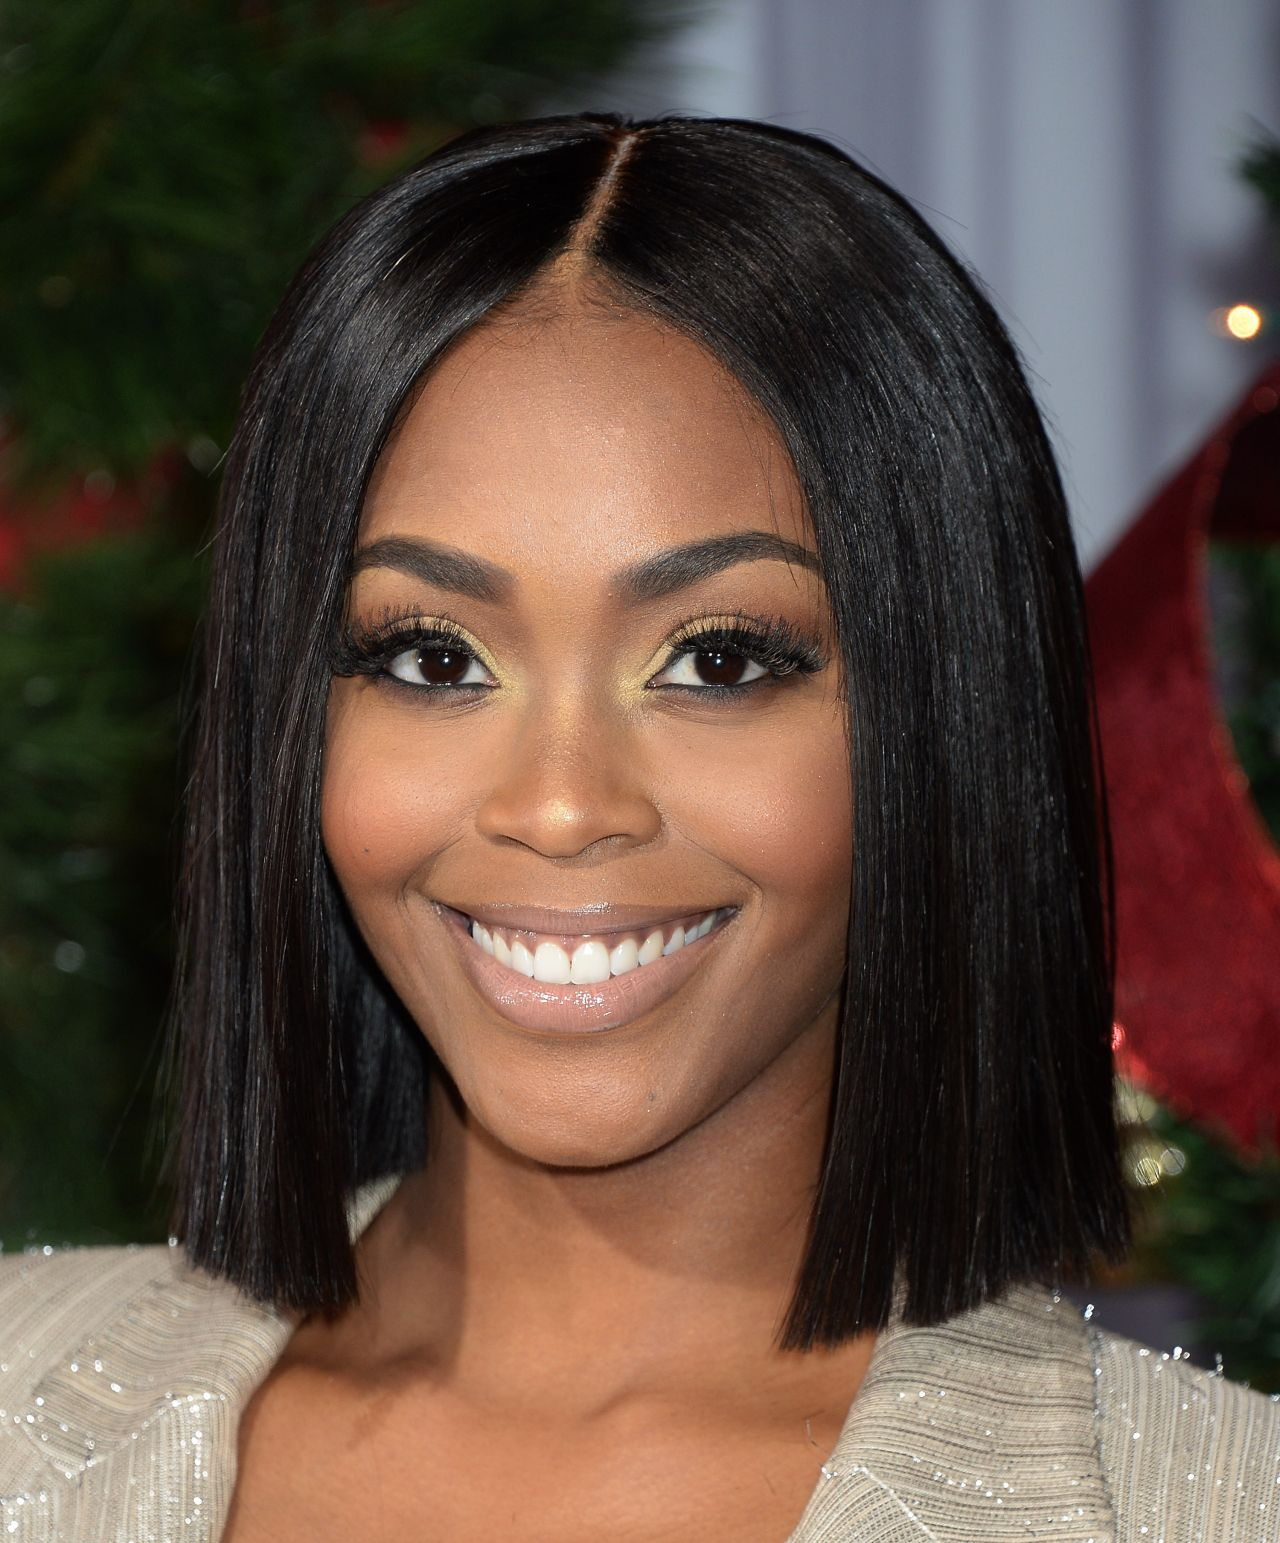 Nafessa Williams nudes (89 foto), leaked Selfie, Snapchat, braless 2020